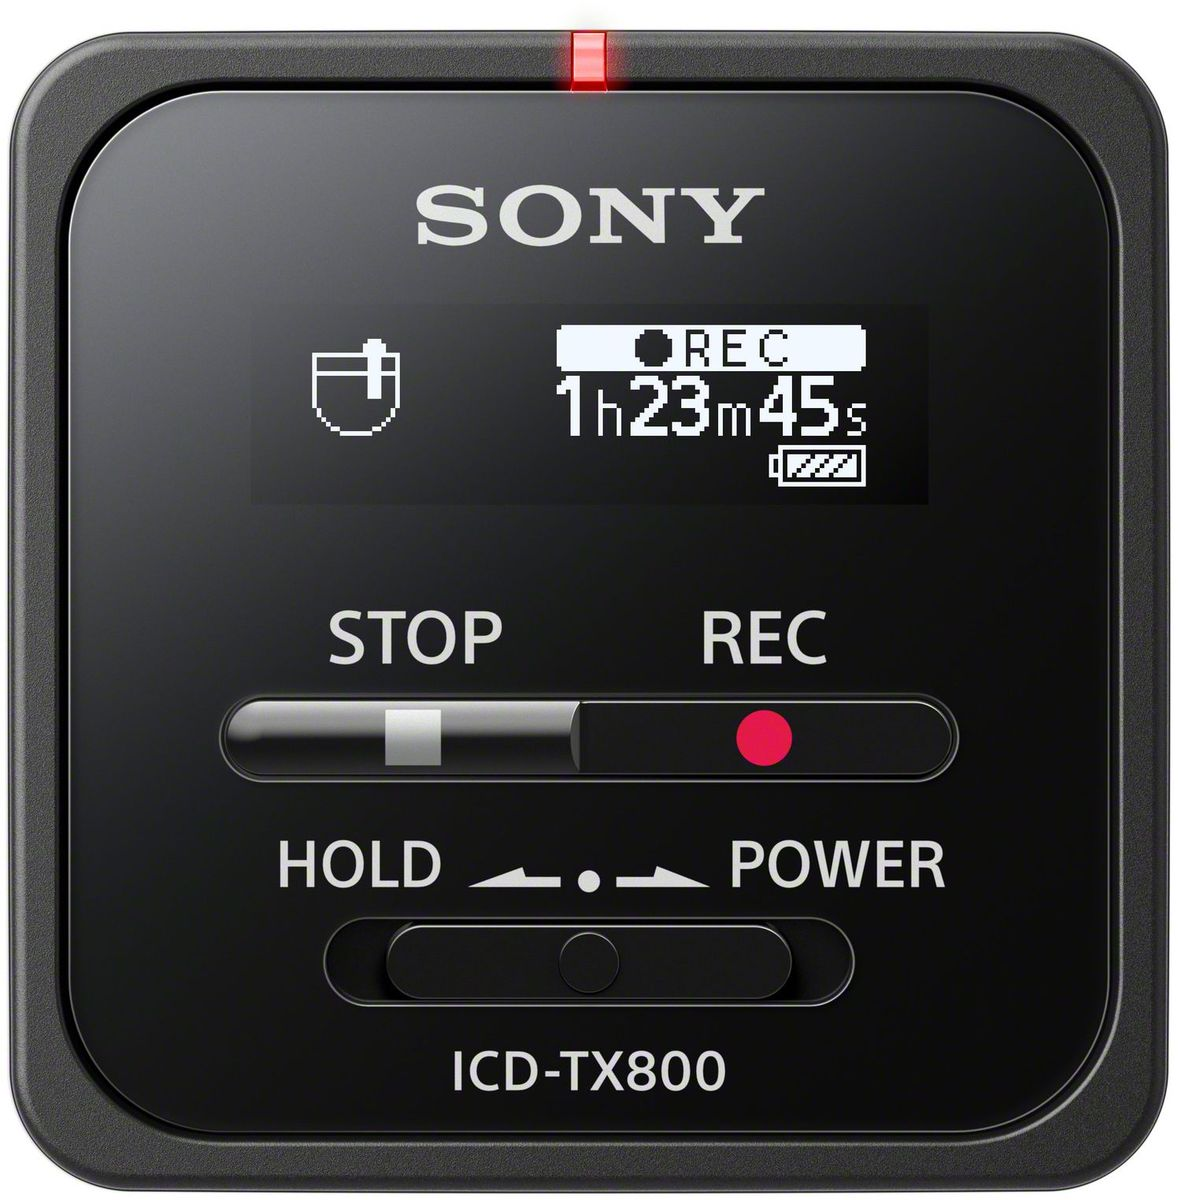 Фото - Sony ICD-TX800, Black диктофон диктофон sony icd tx650 16gb black